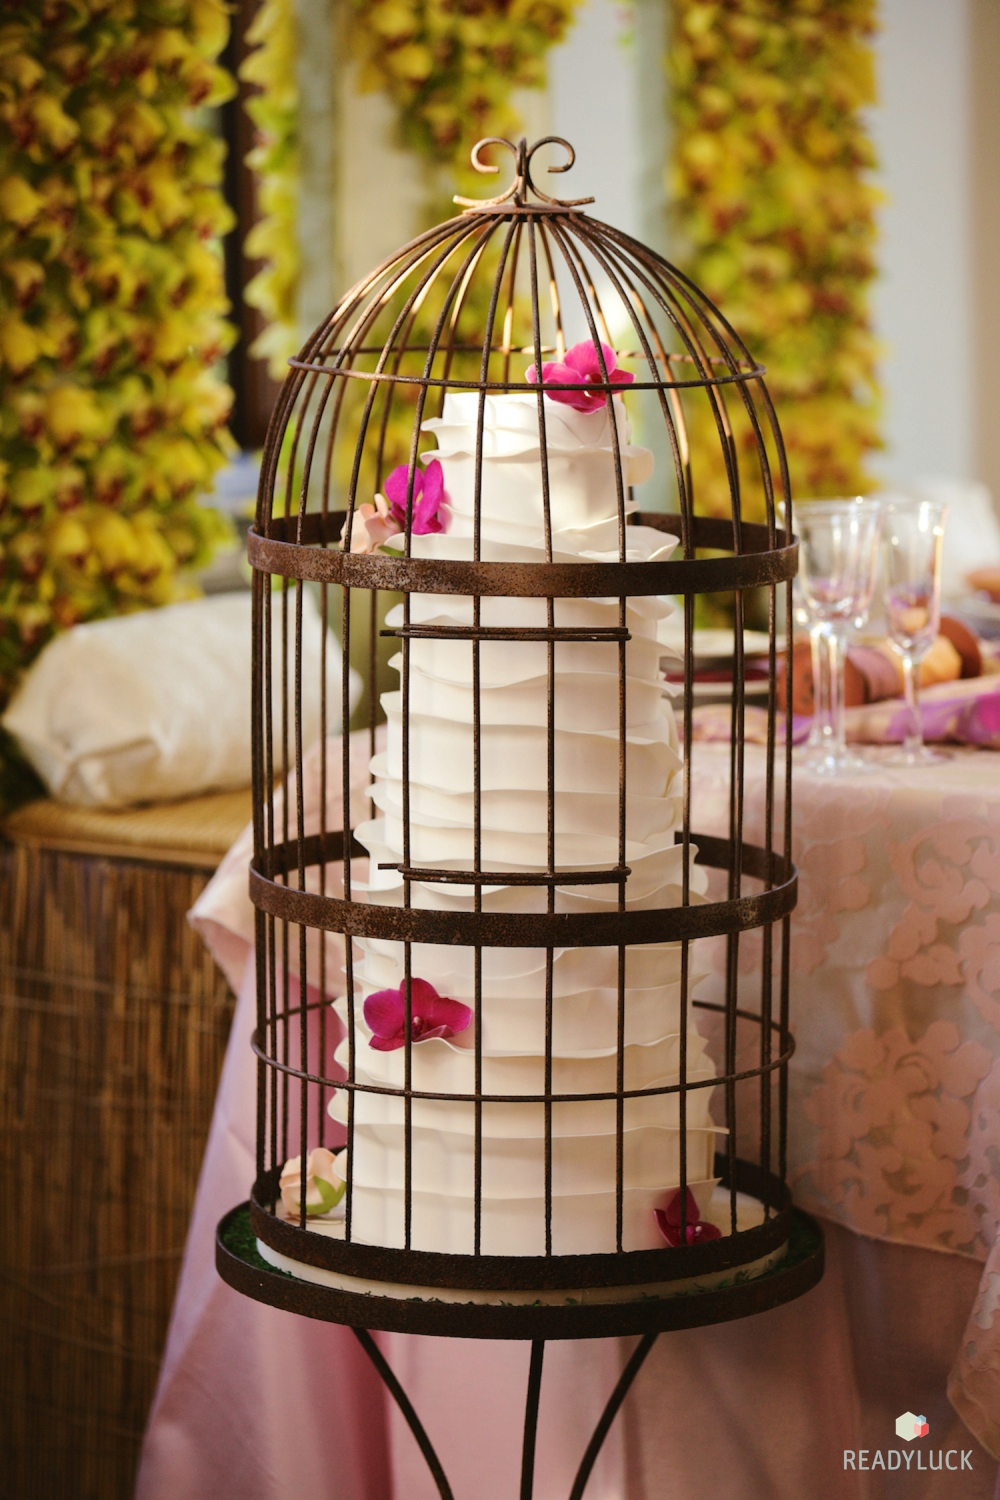 Wedding Cake in a Birdcage